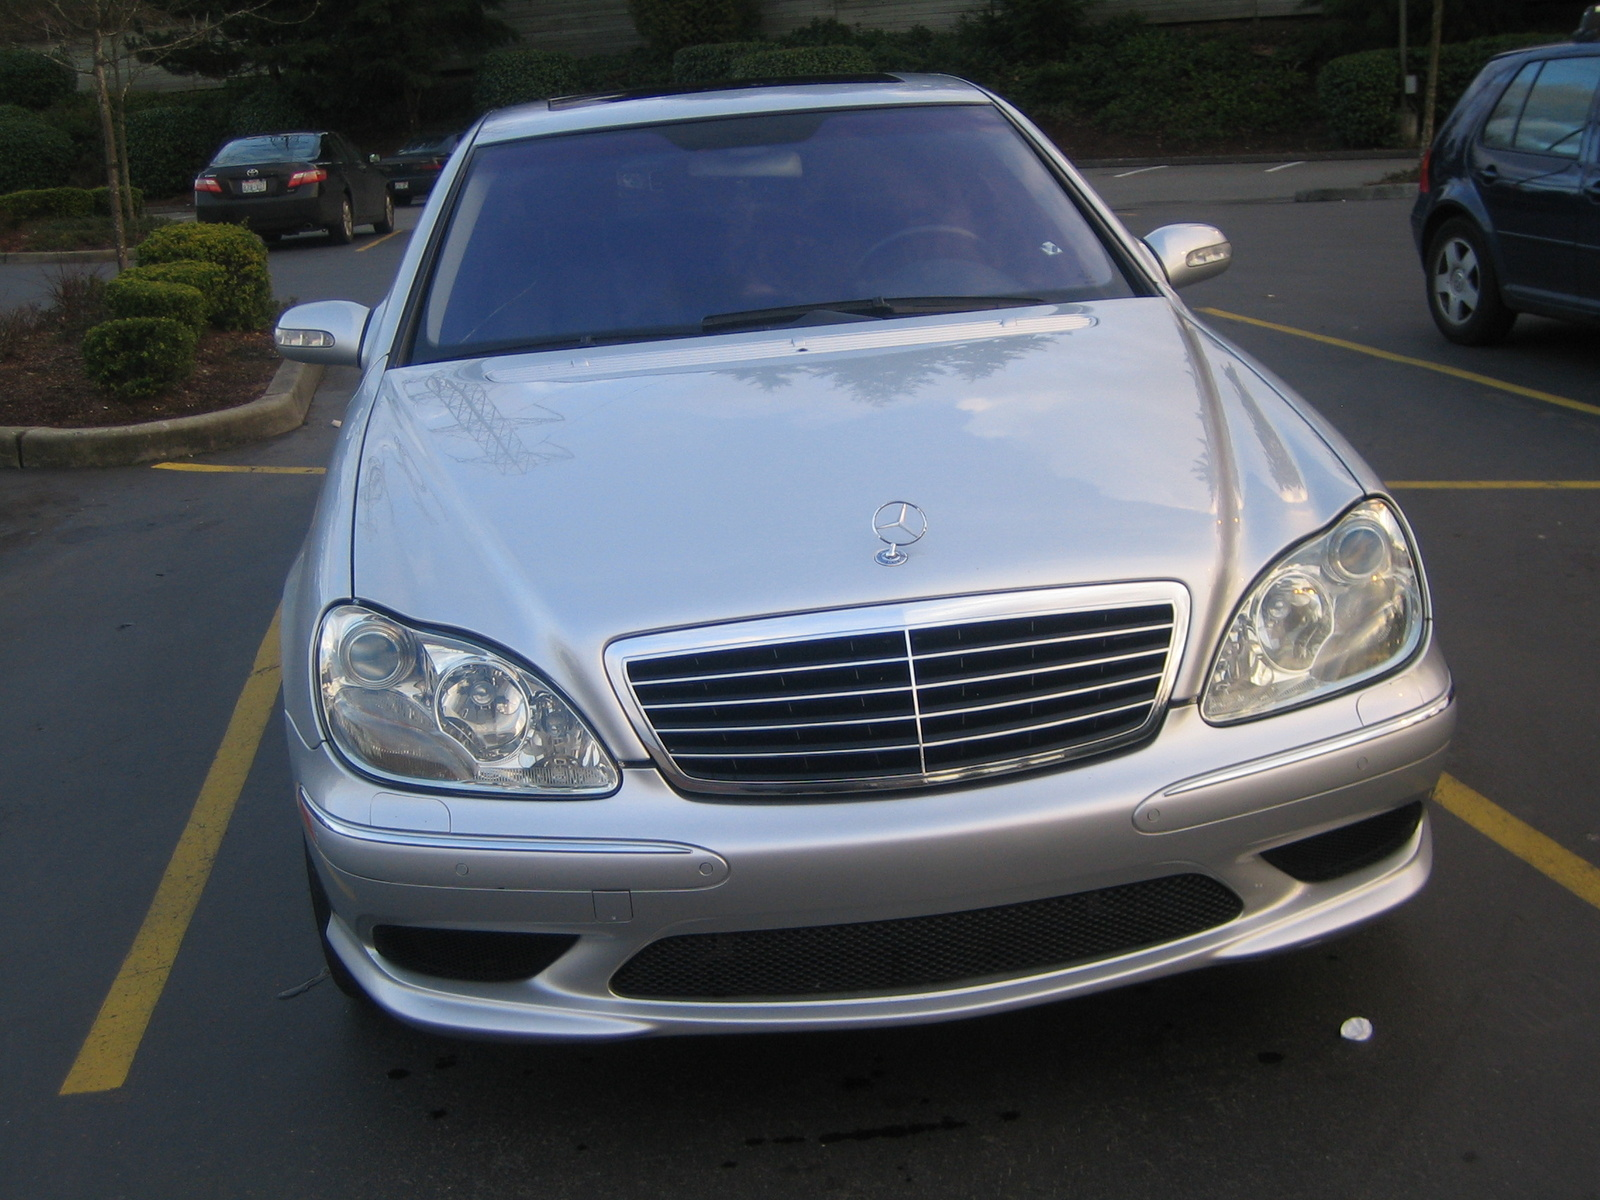 2004 Mercedes-Benz S-Class - Information and photos - ZombieDrive